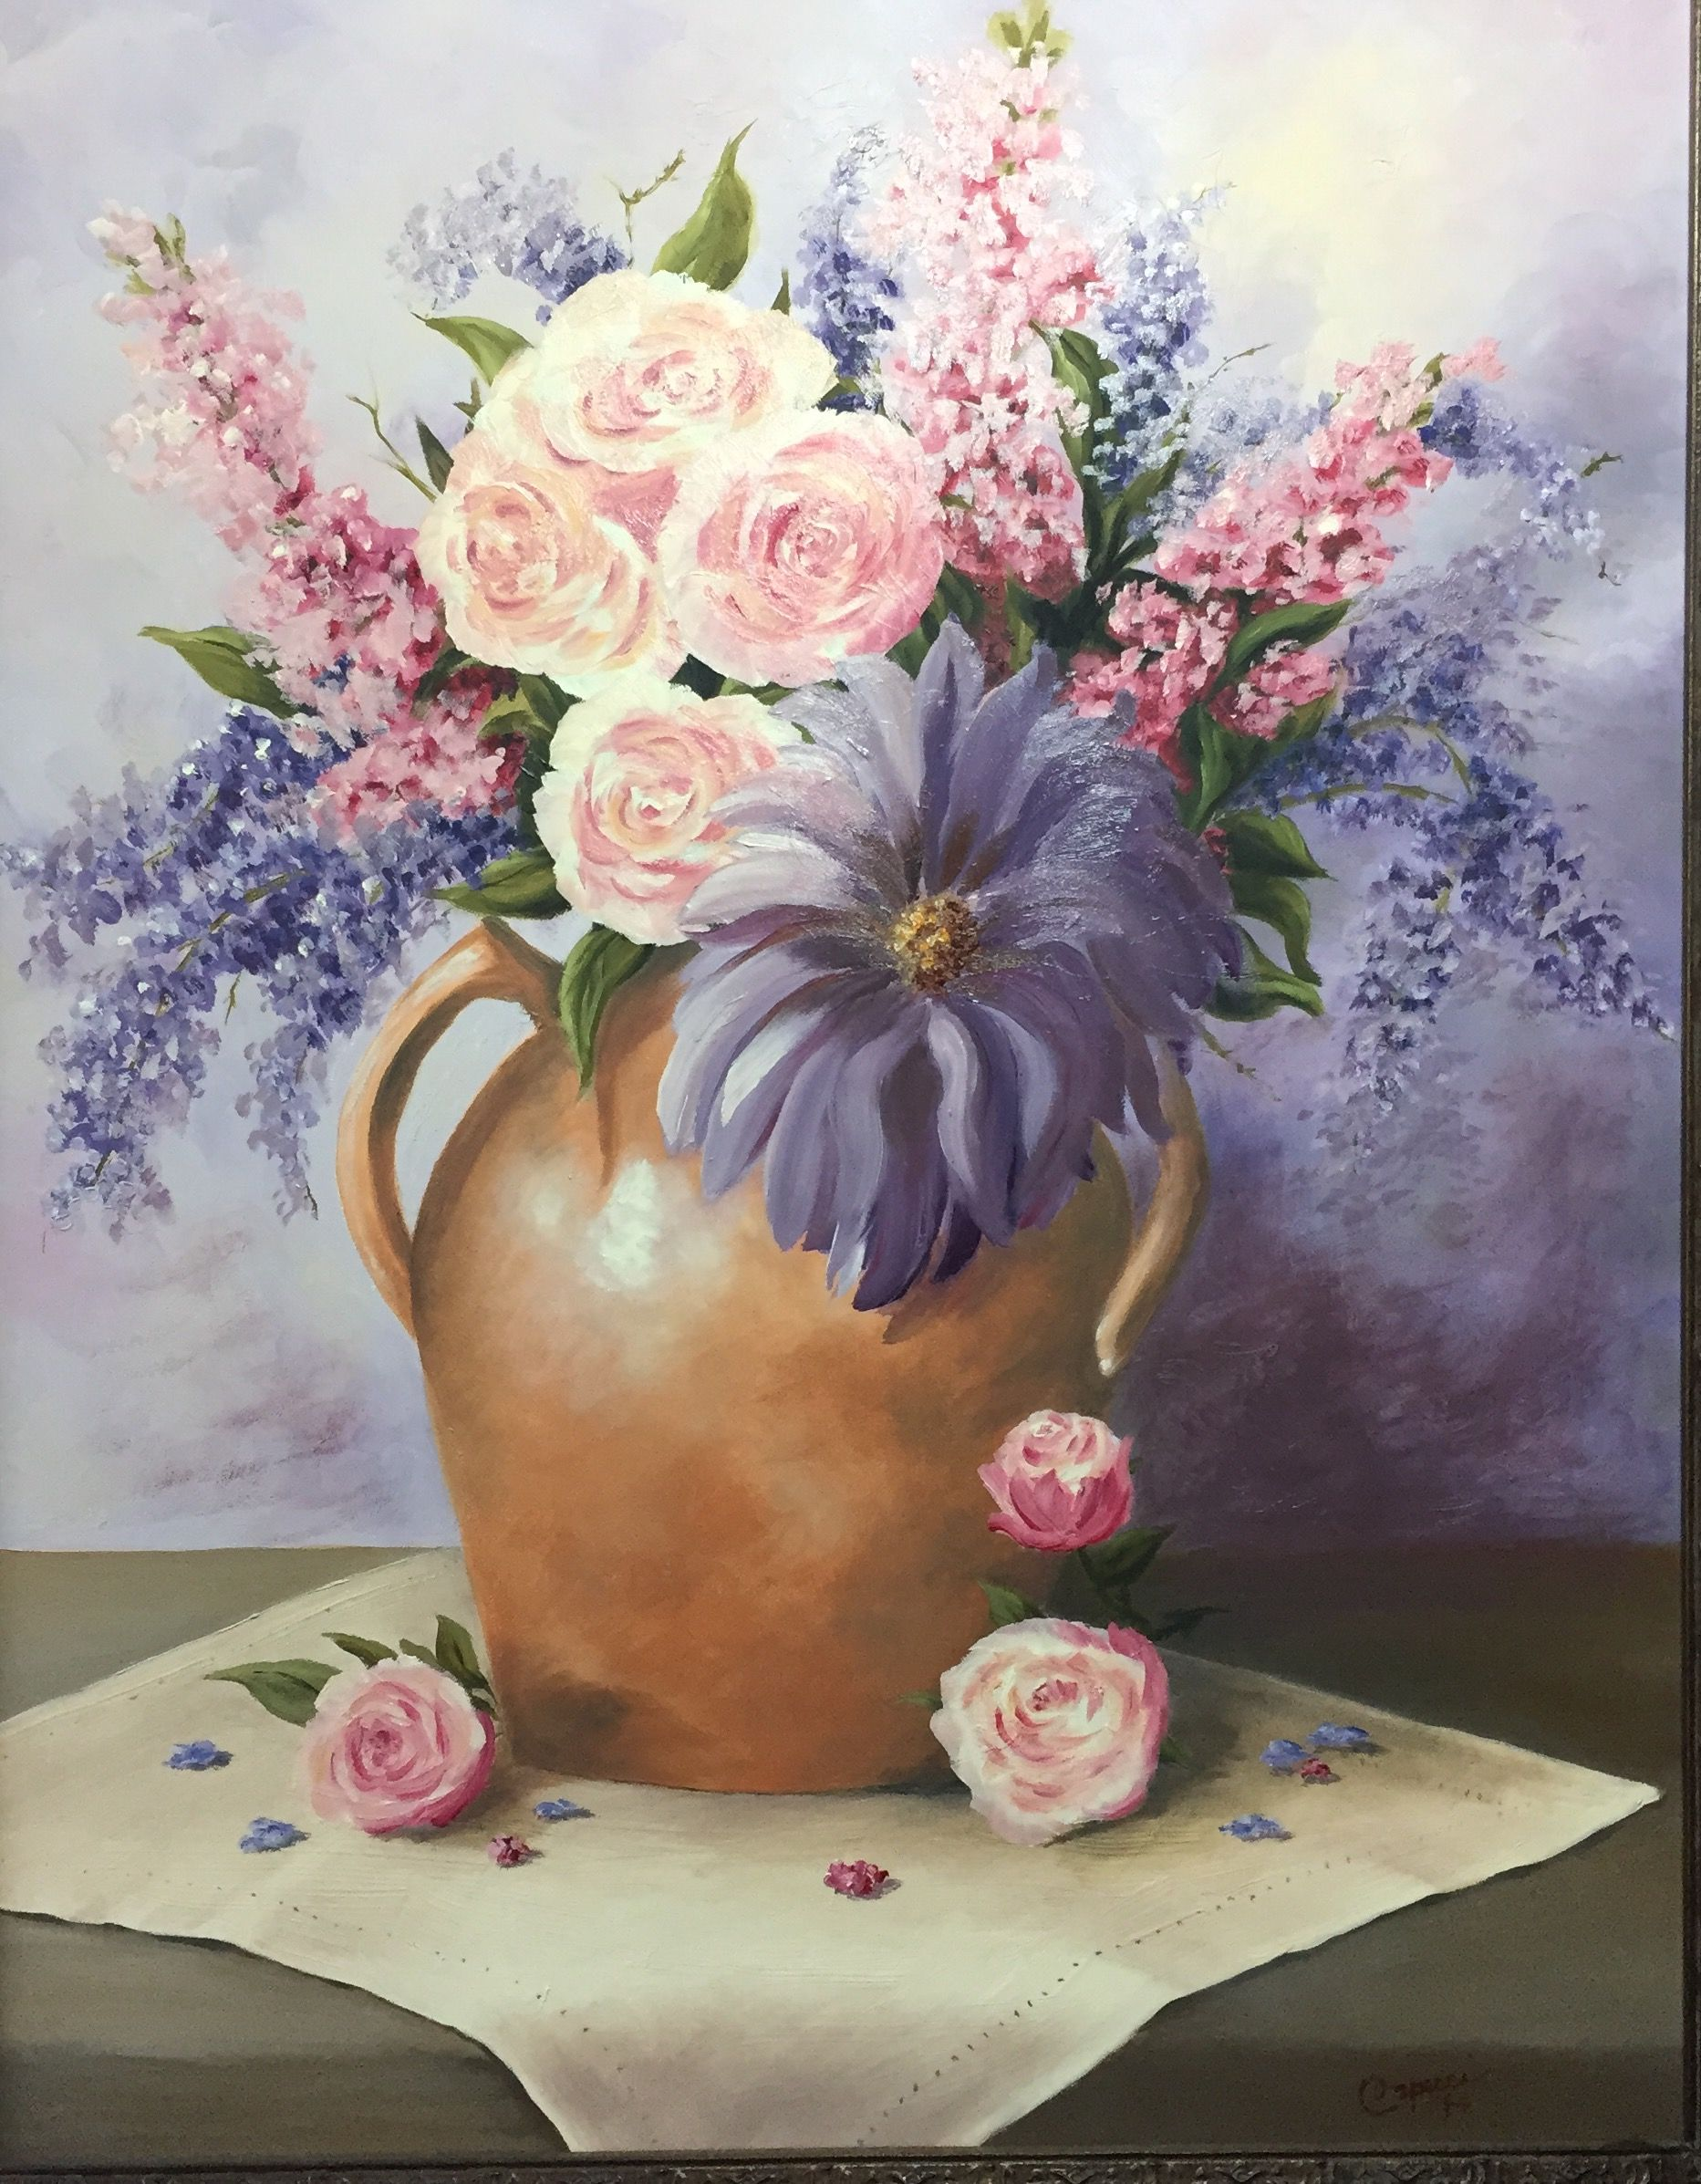 Pin by Robin Capecci on floral paintings Floral painting